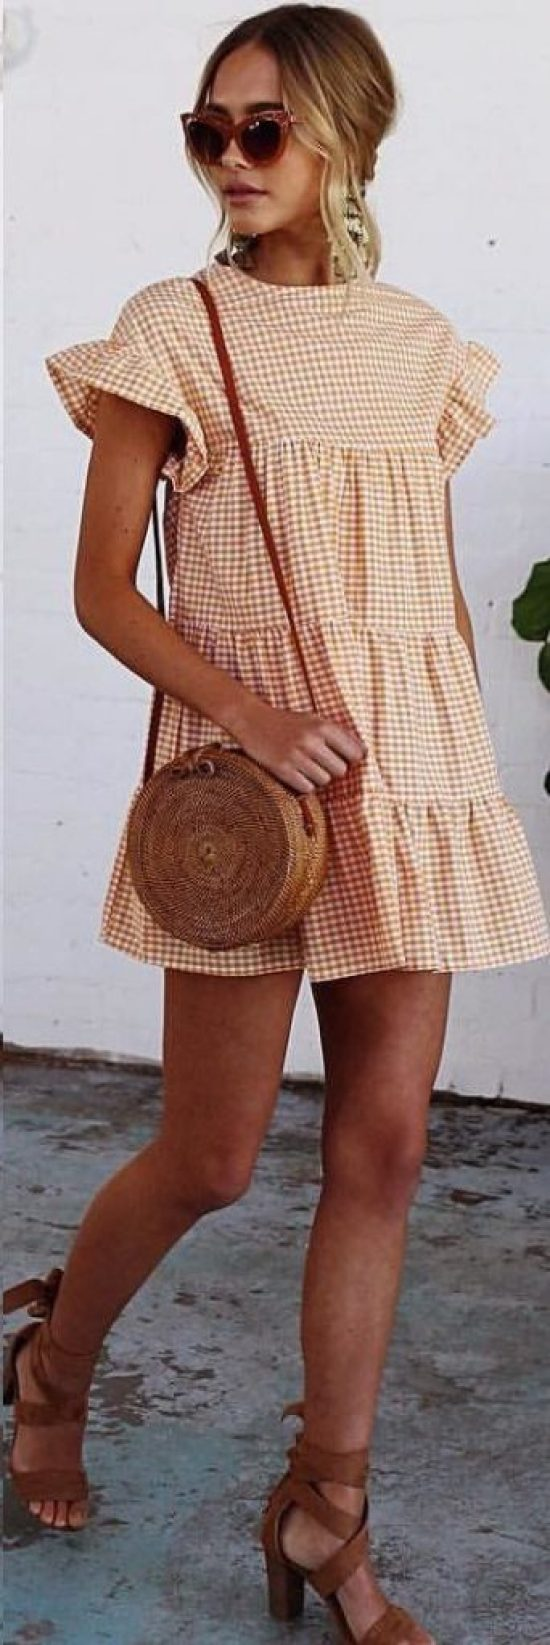 12 Sorority Recruitment Outfits That Will Impress Any PNM